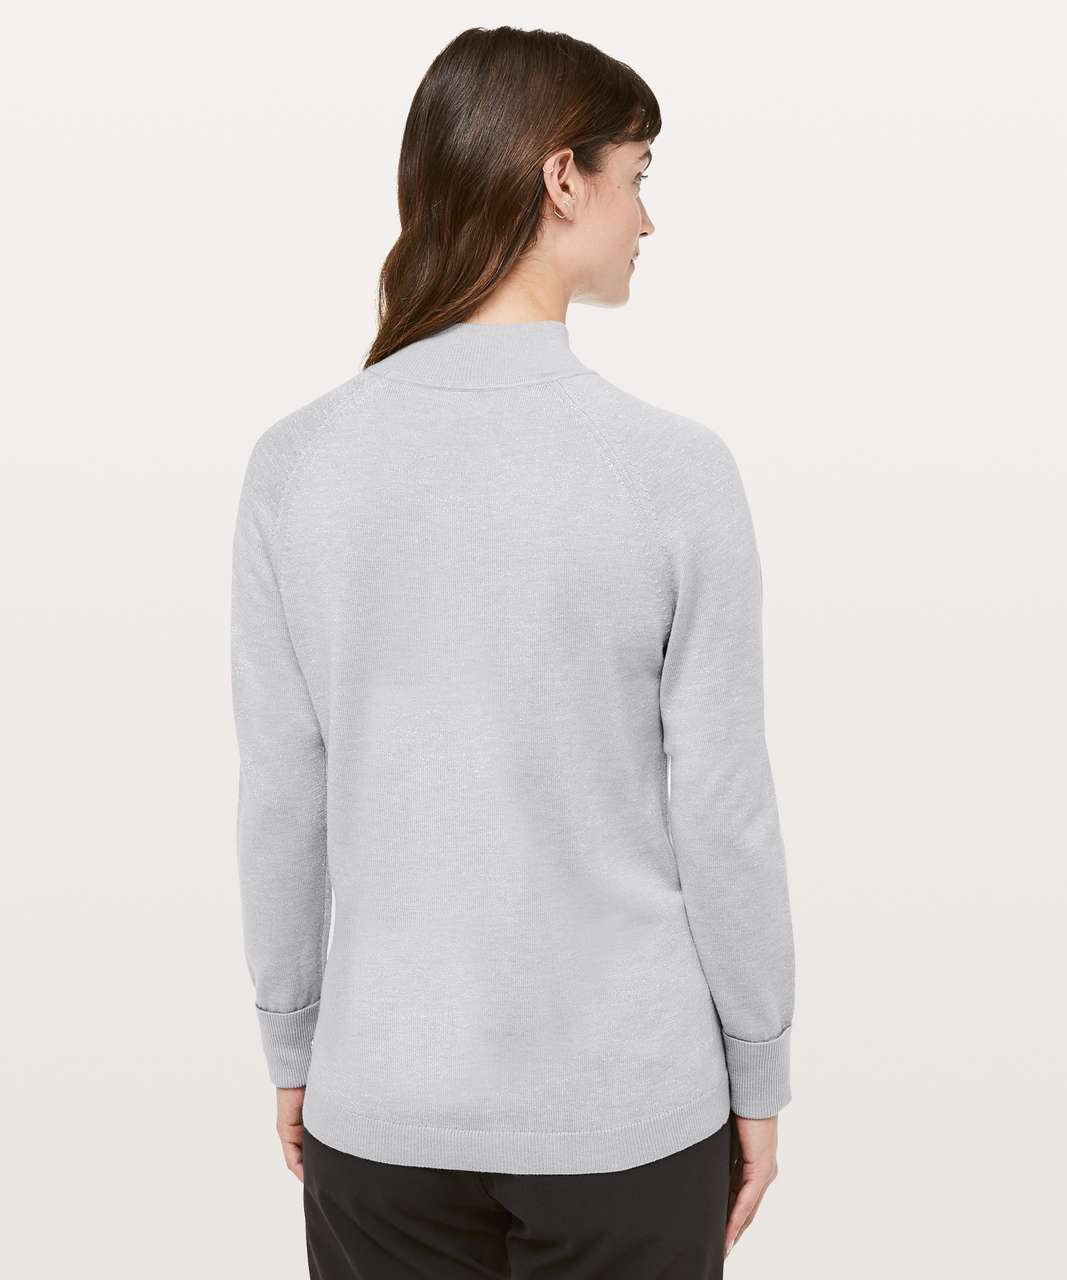 Lululemon Soft Shine Sweater - Heathered Silver Drop / Antique Silver